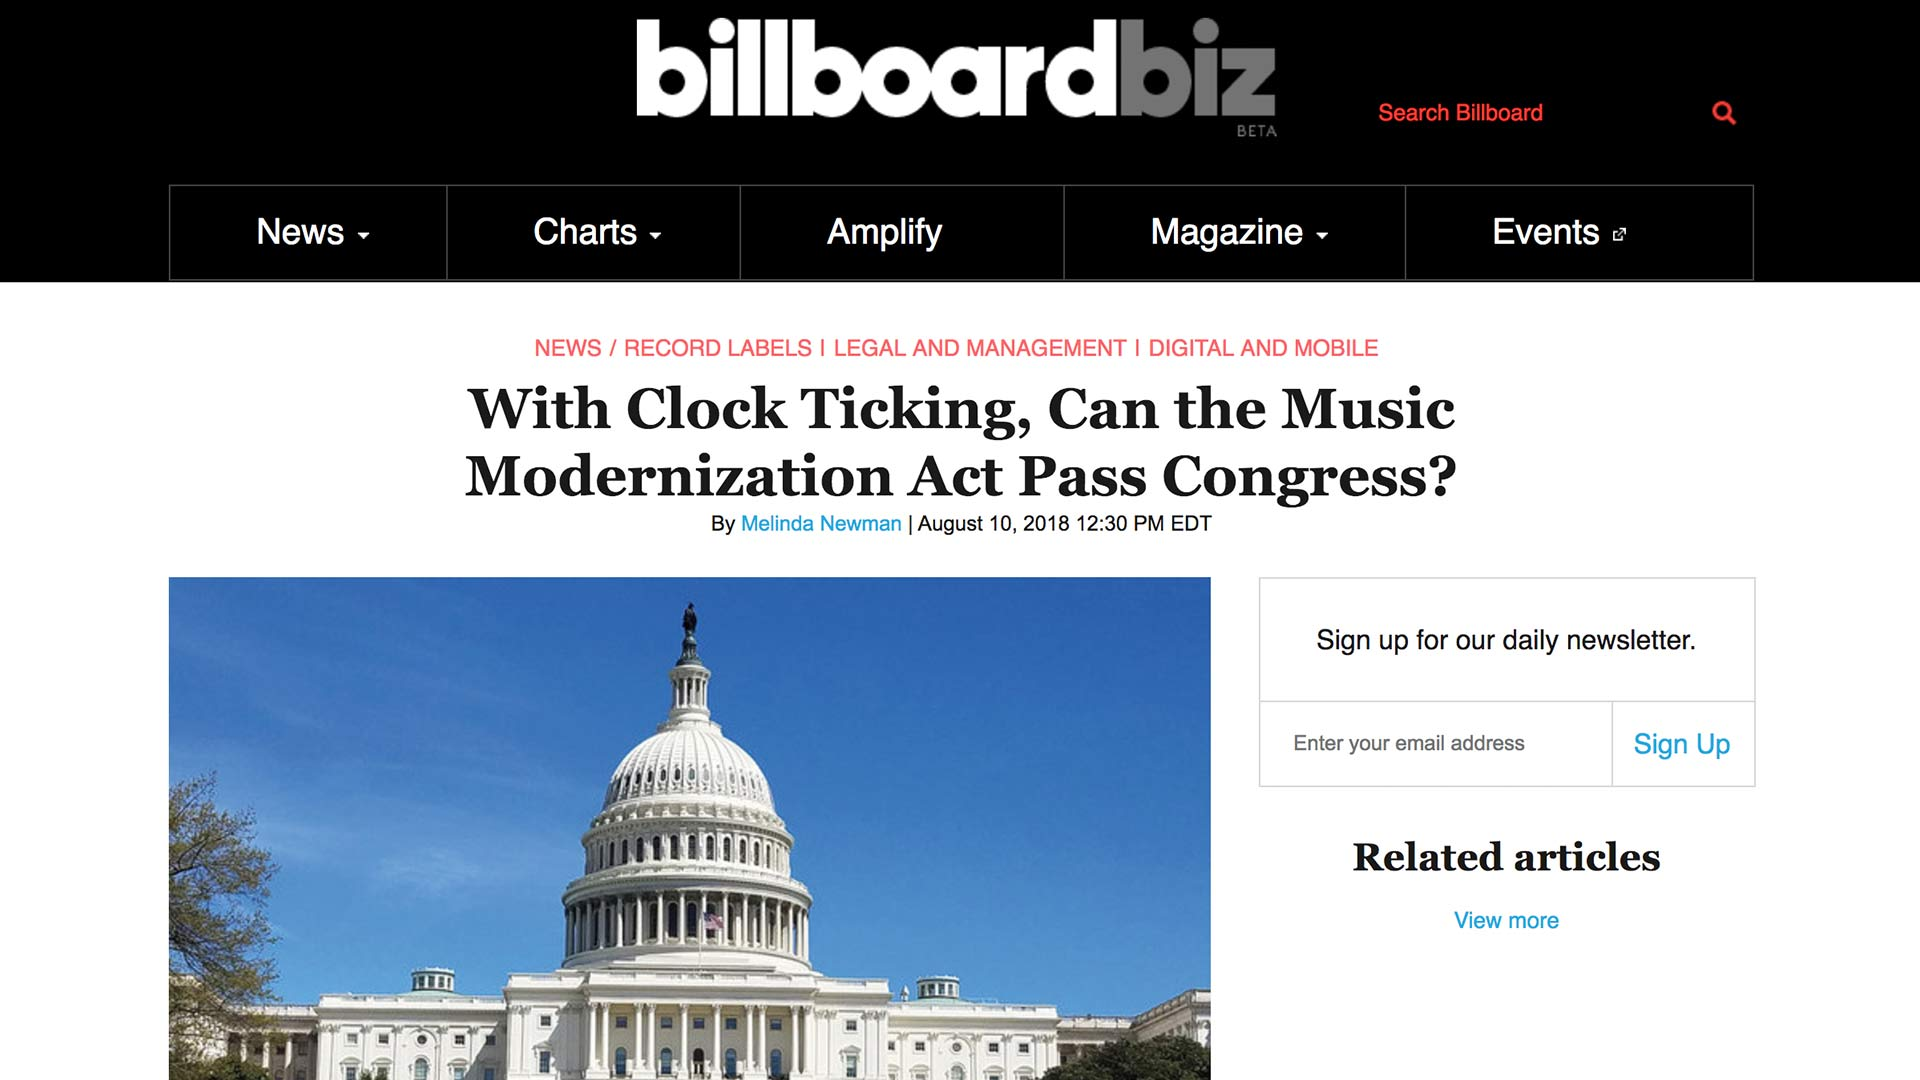 Fairness Rocks News With Clock Ticking, Can the Music Modernization Act Pass Congress?